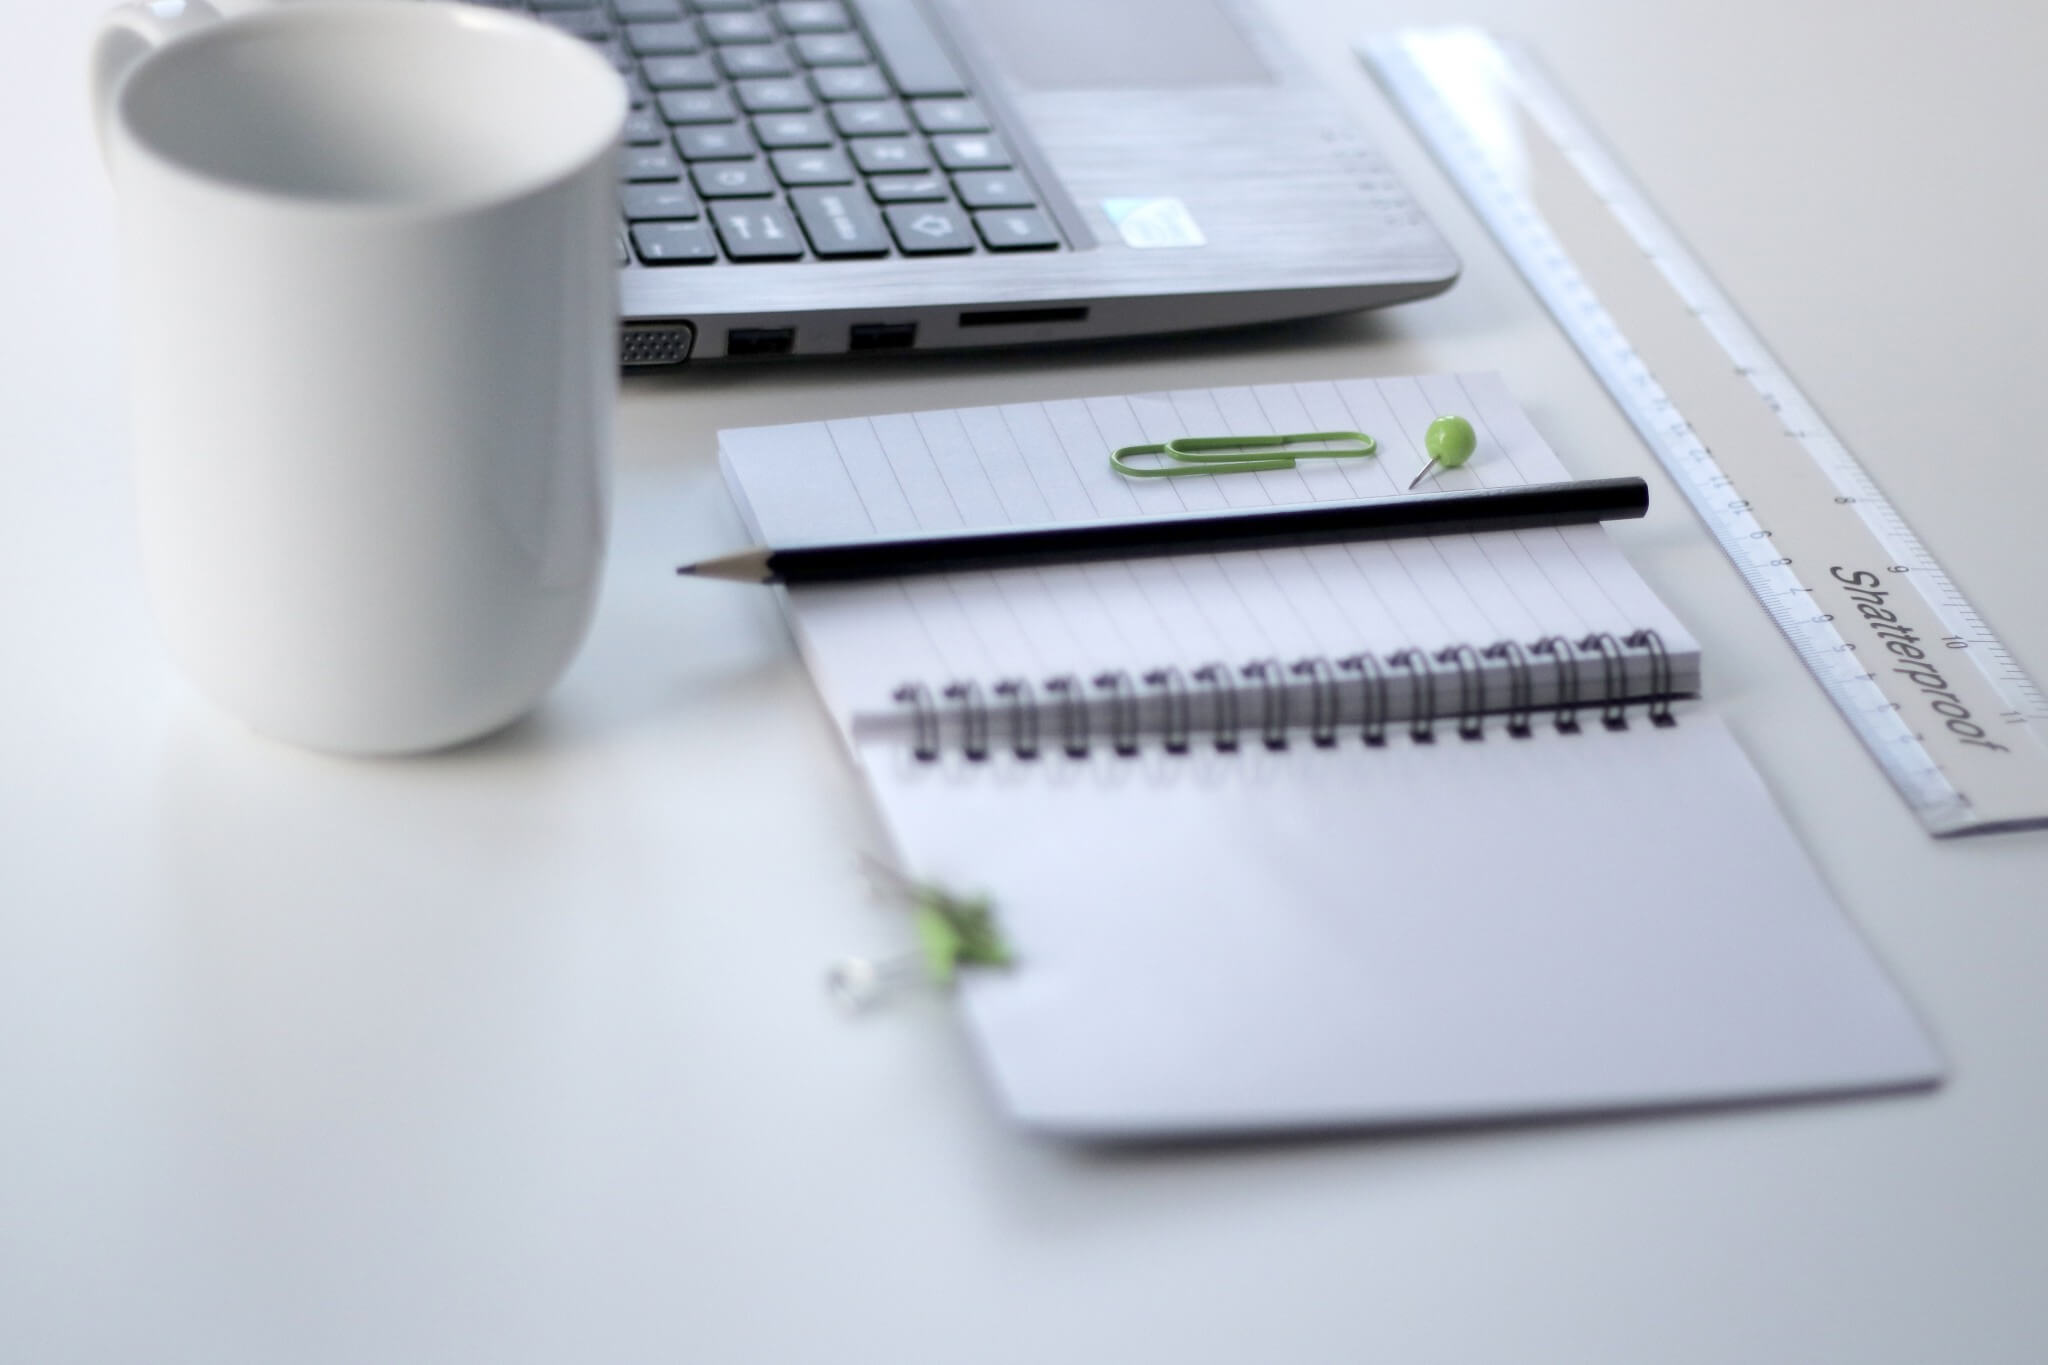 Notebook and notes at Desk